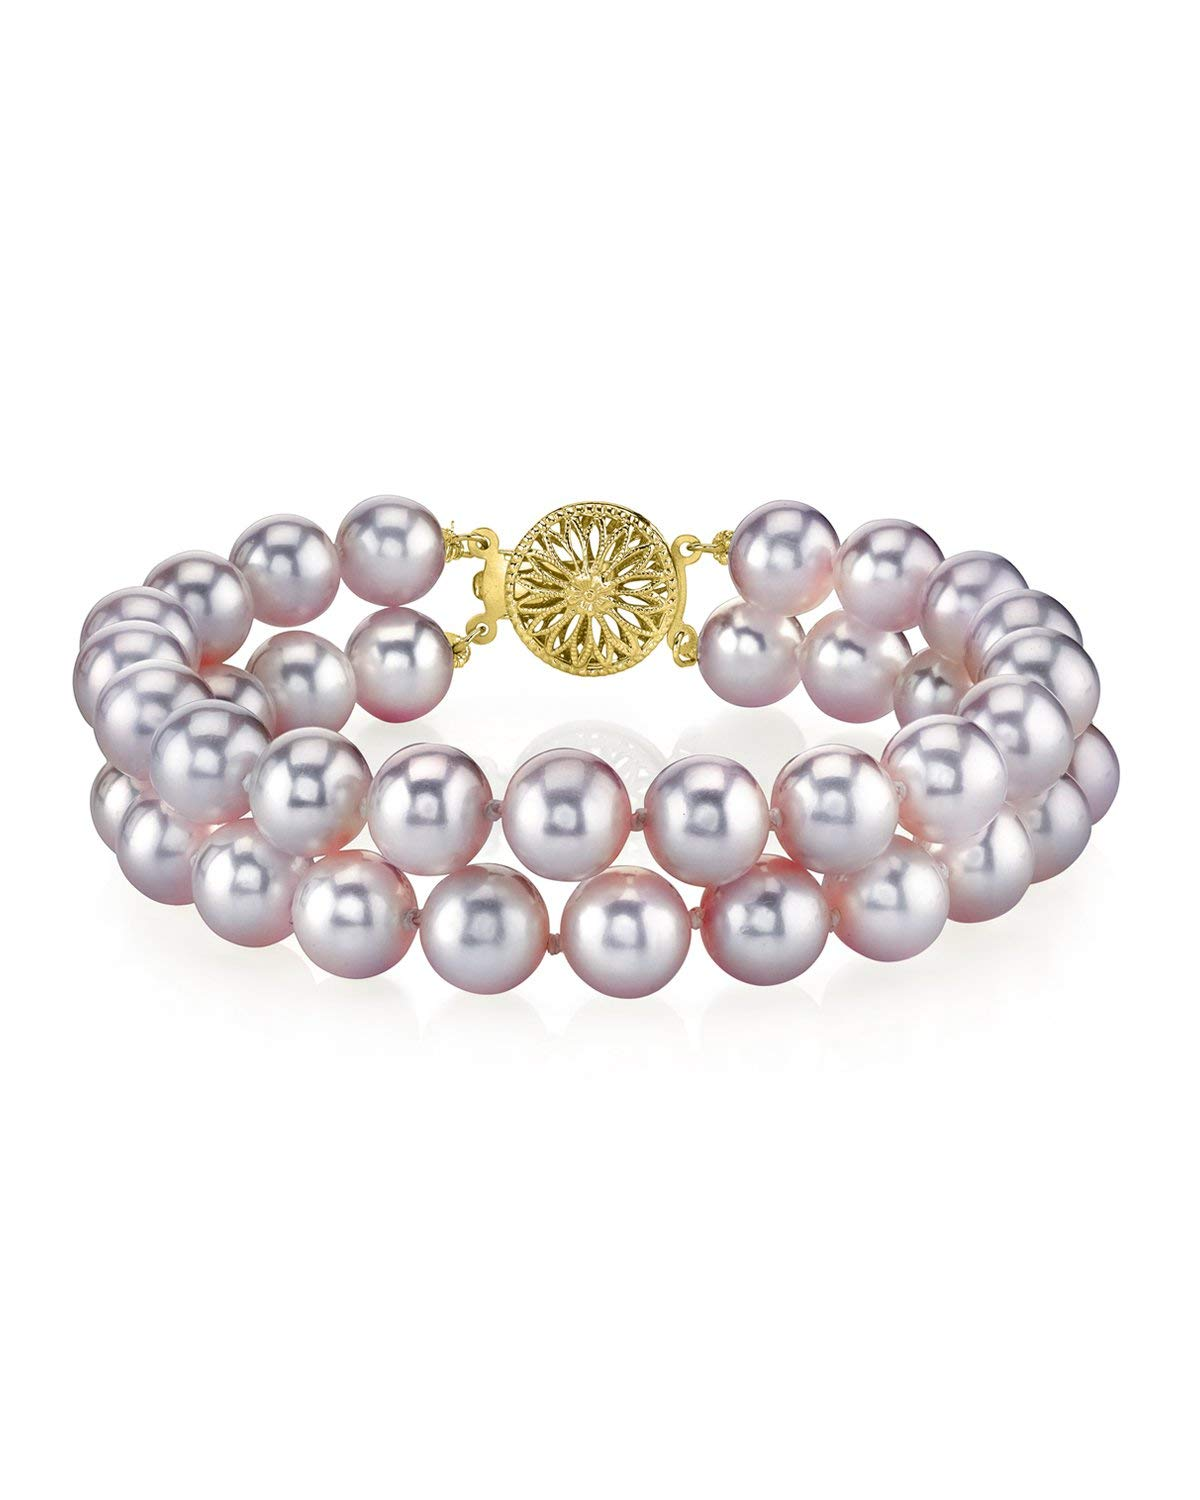 THE PEARL SOURCE 14K Gold 7-8mm AAA Quality Round Pink Freshwater Cultured Pearl Double Strand Bracelet for Women by The Pearl Source